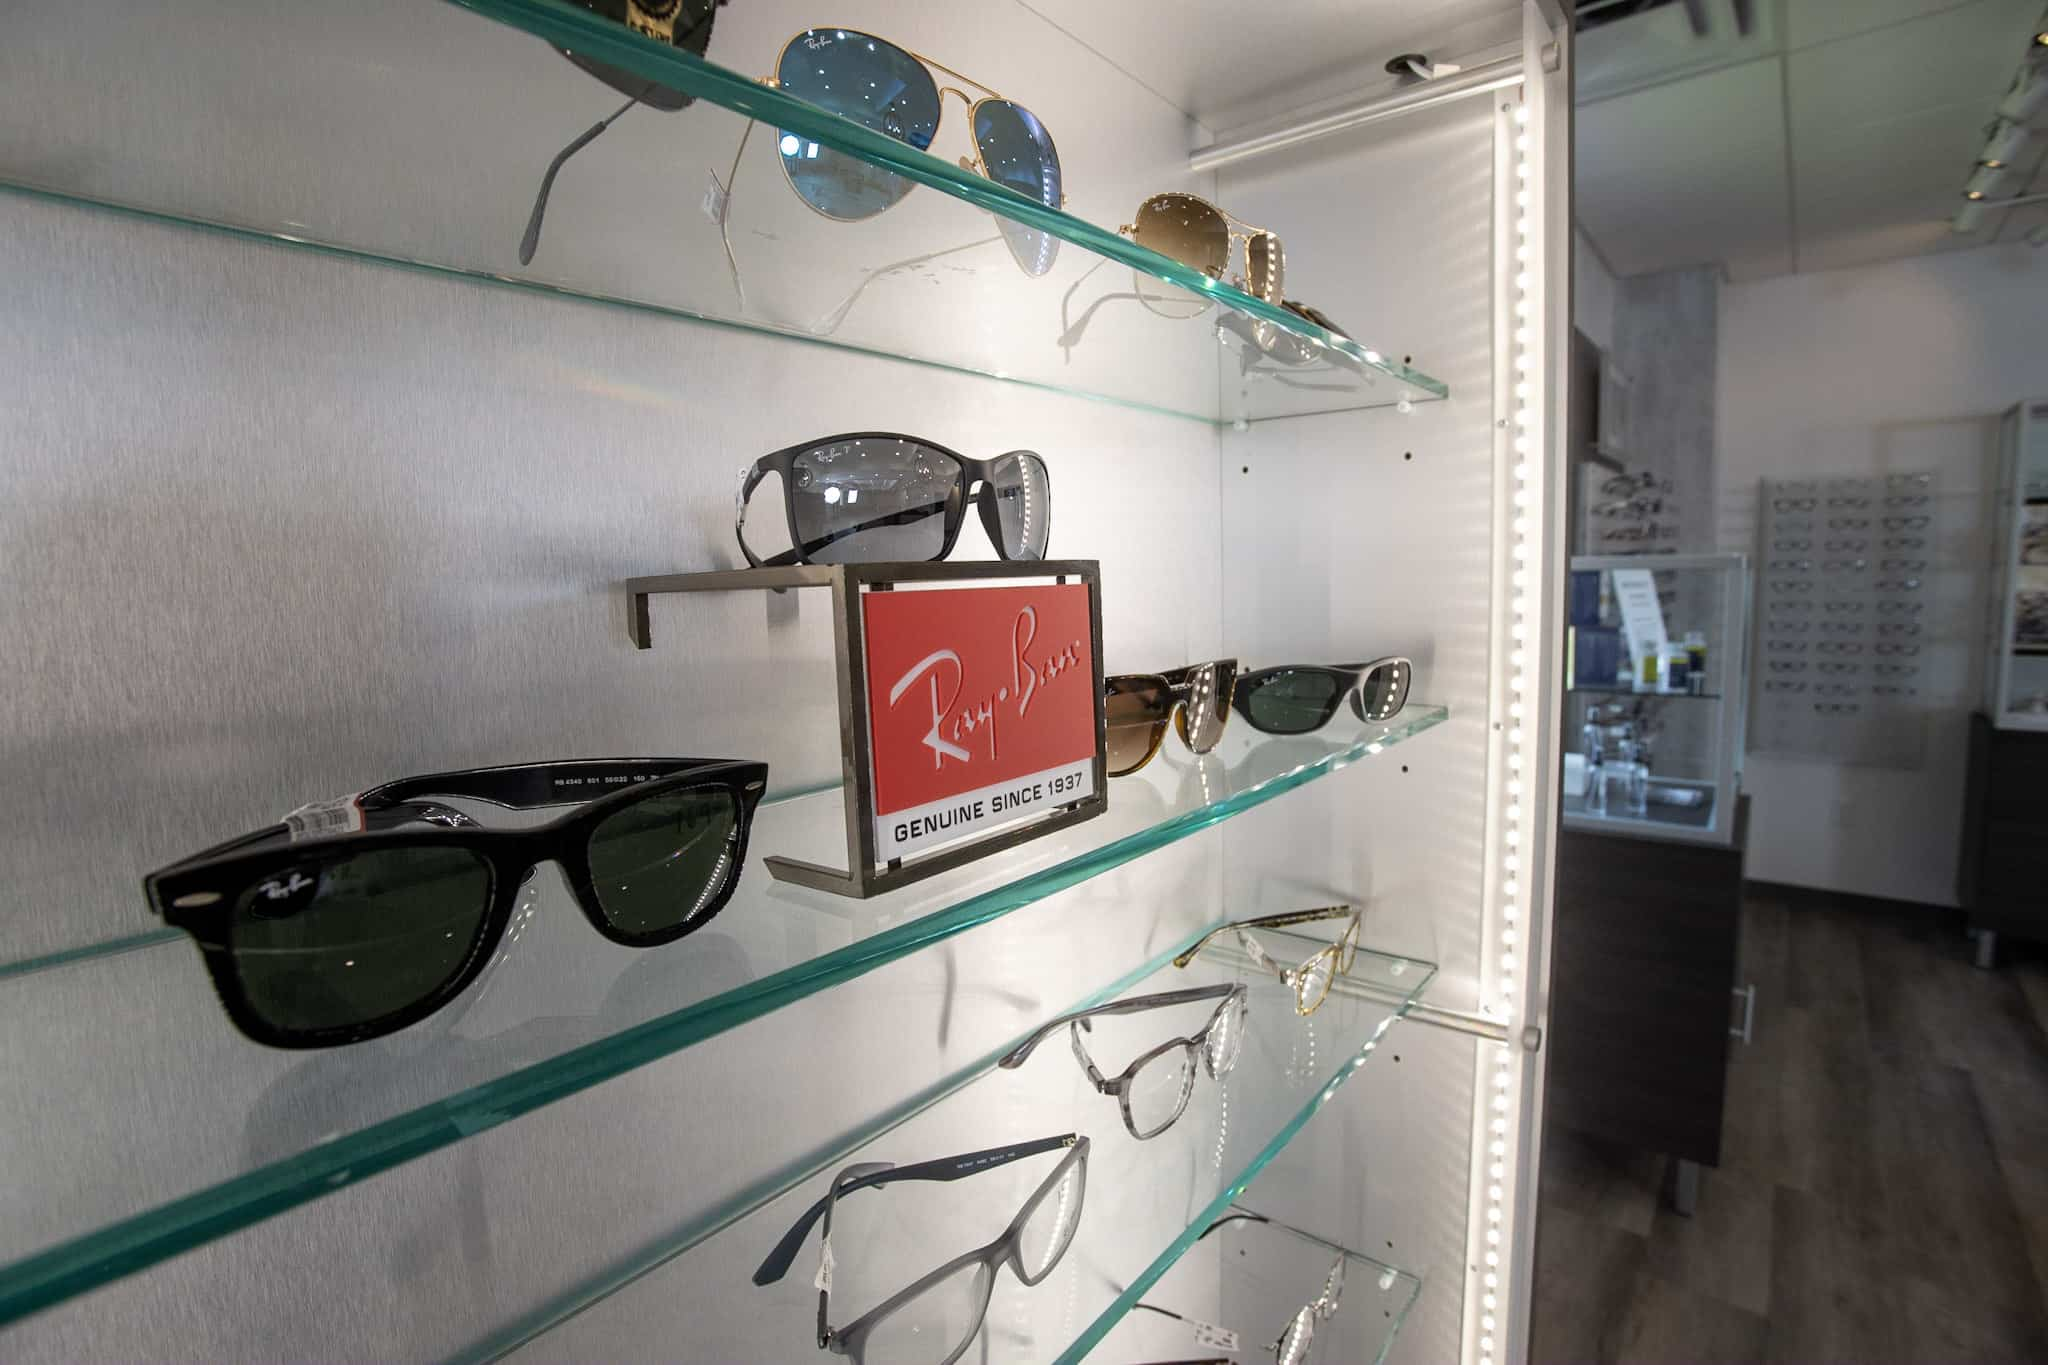 Ray Ban prescription sunglasses display positioned on glass shelves of Family Eye Care Bristol Optometry office.